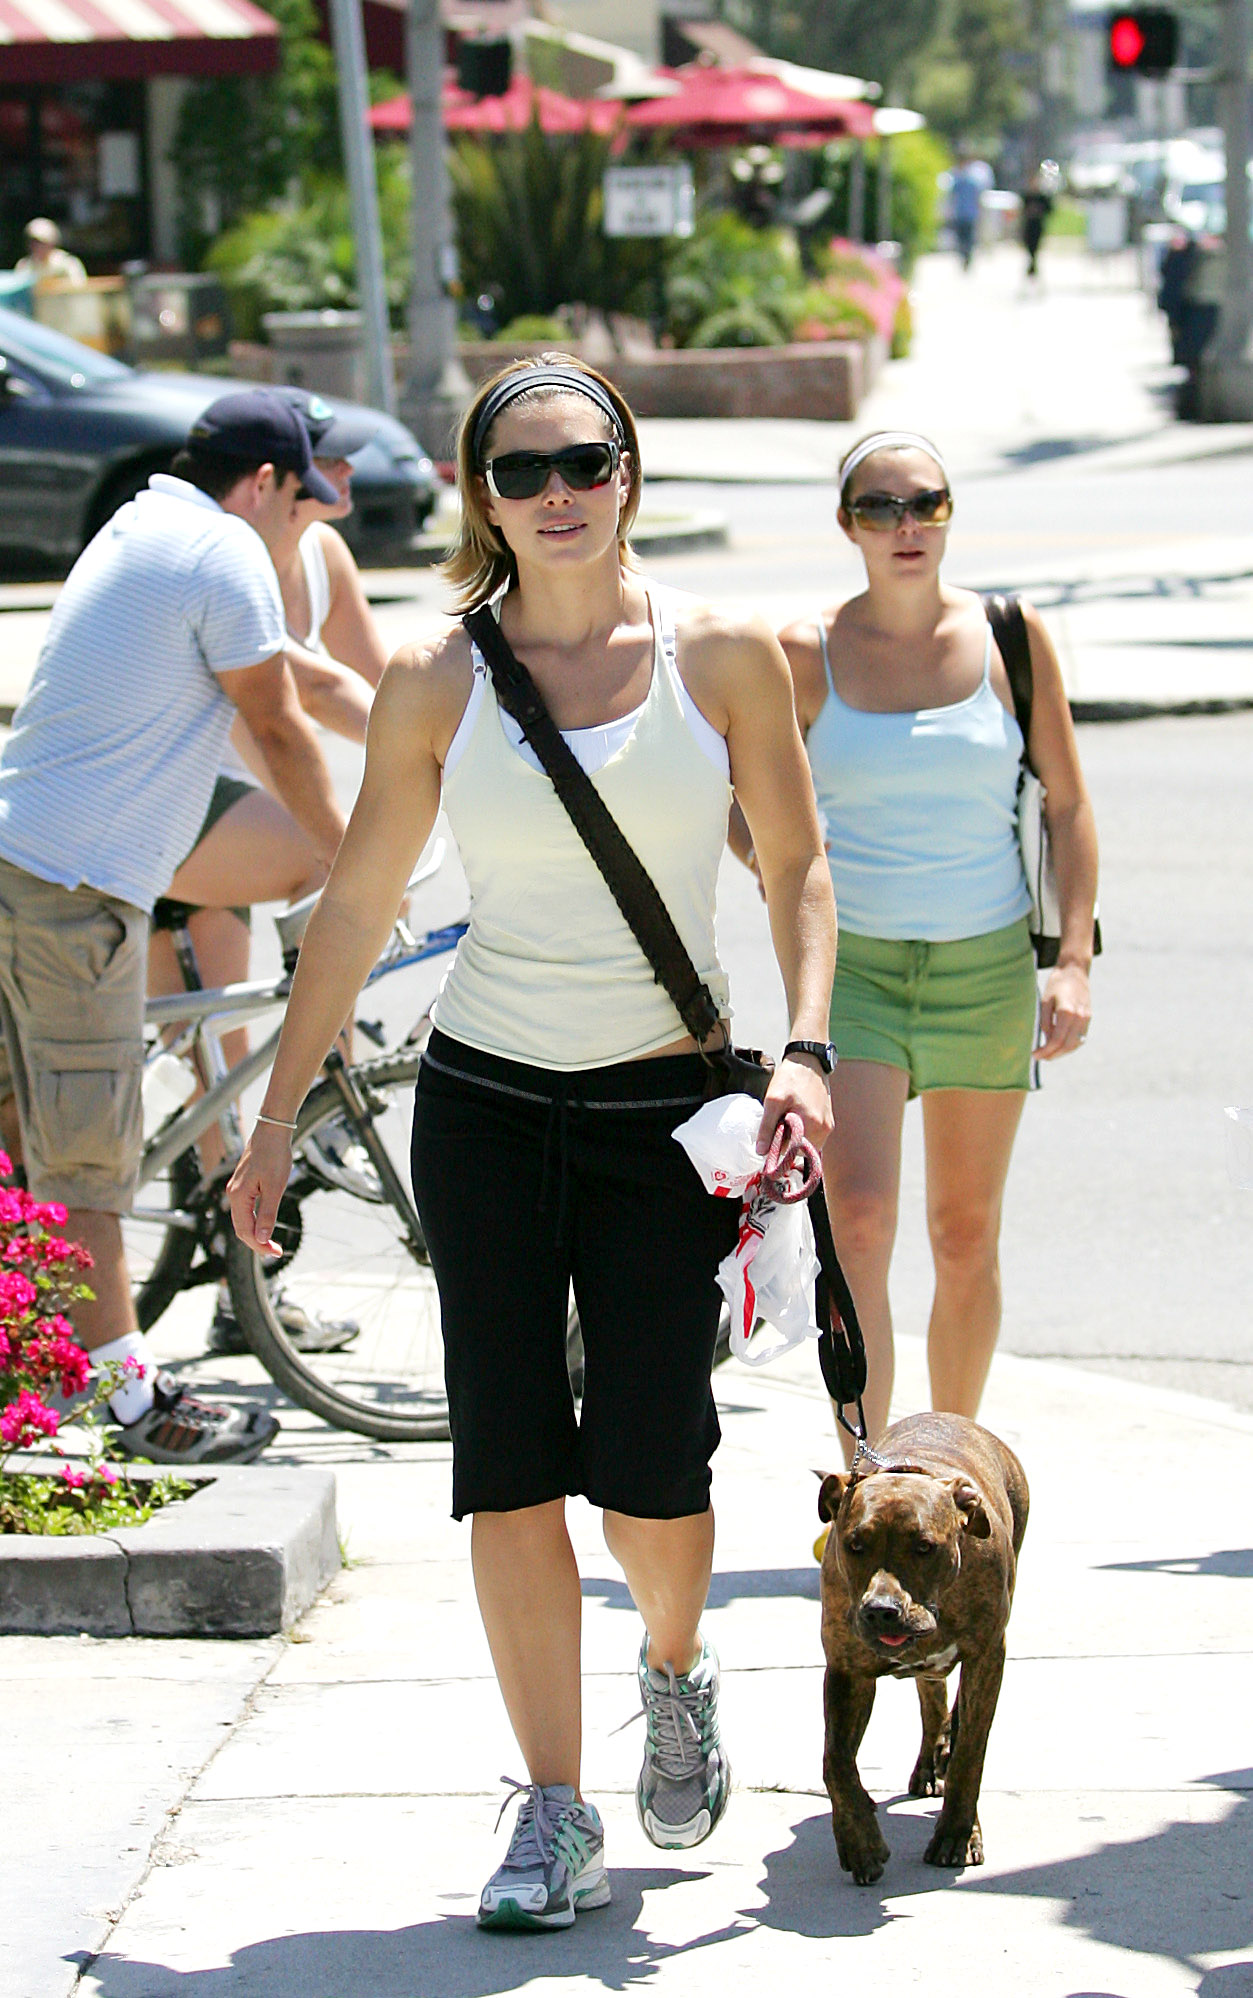 85001_Jessica_Biel_and_a_friend_walk_their_dogs_together_in_Los_Angeles_03_122_488lo.jpg